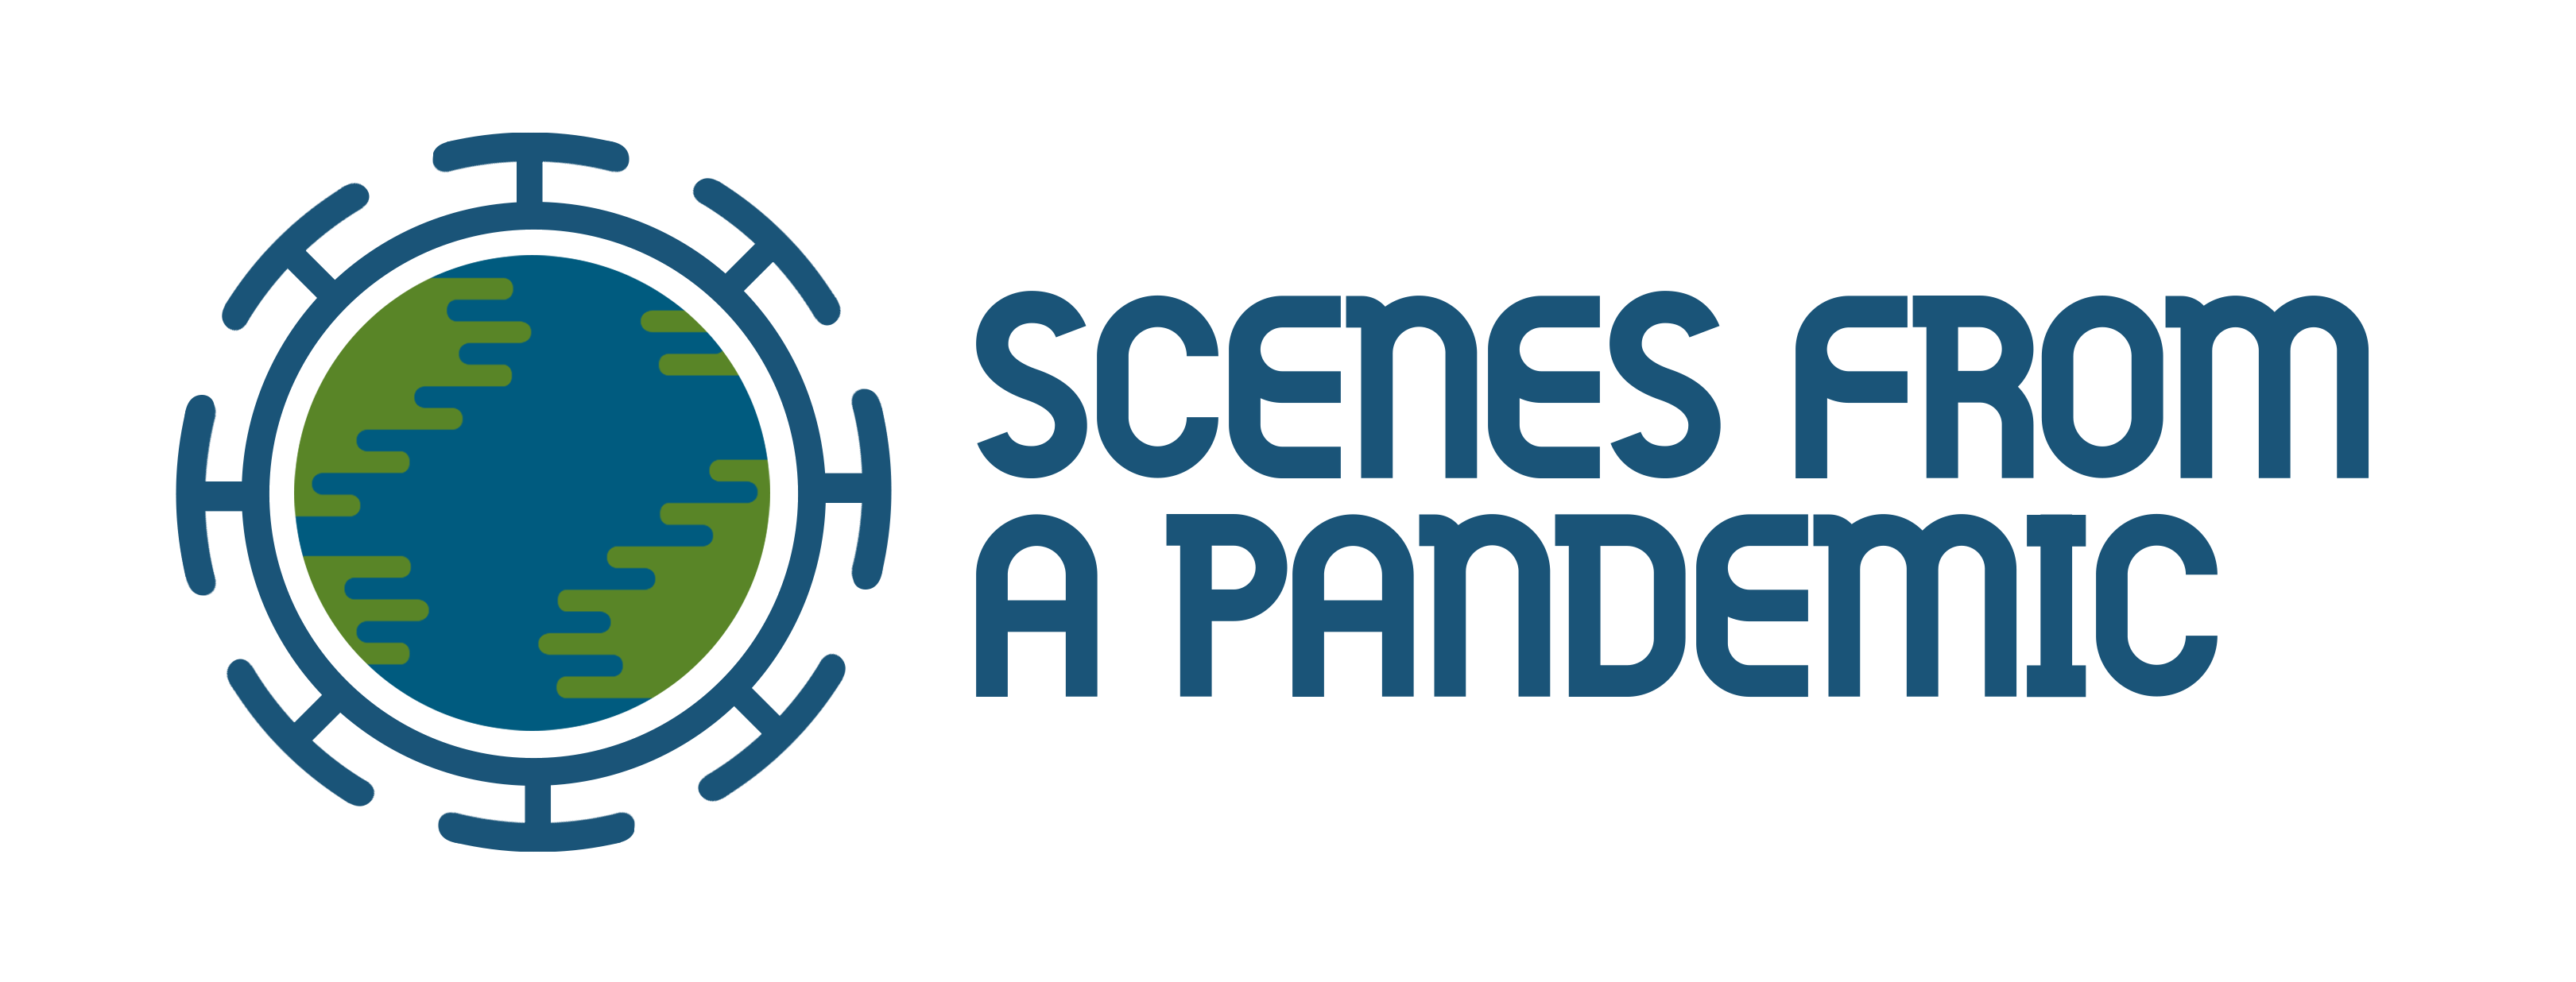 Scenes from a Pandemic